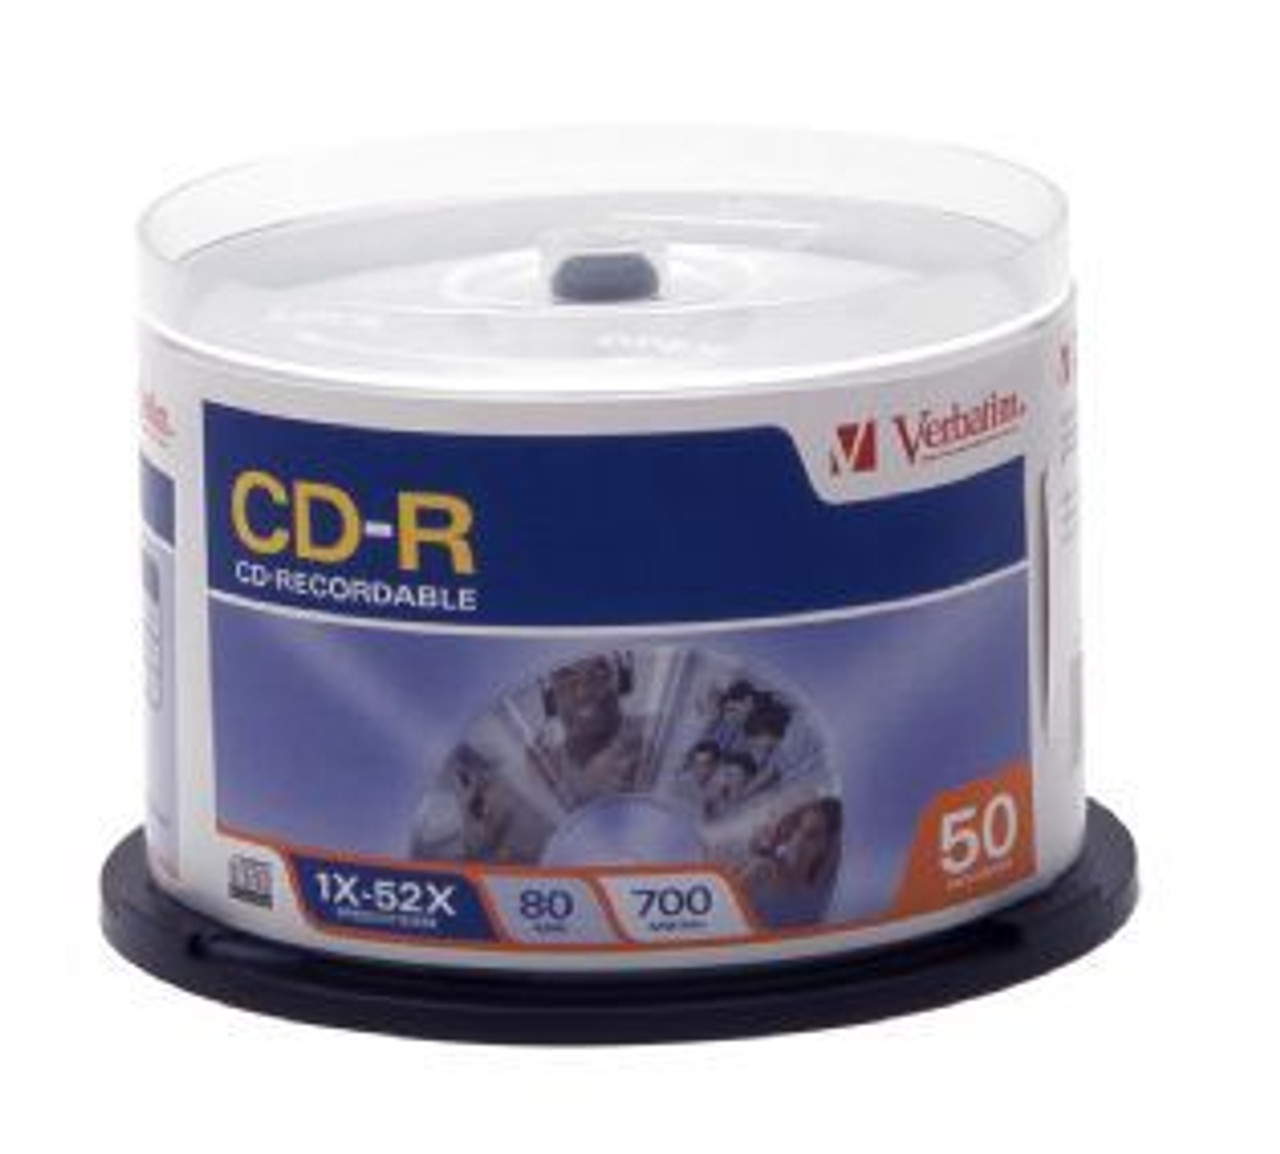 Image for Verbatim CD-R 80 Min 700MB 50 Pack Spindle 52x (94691) CX Computer Superstore